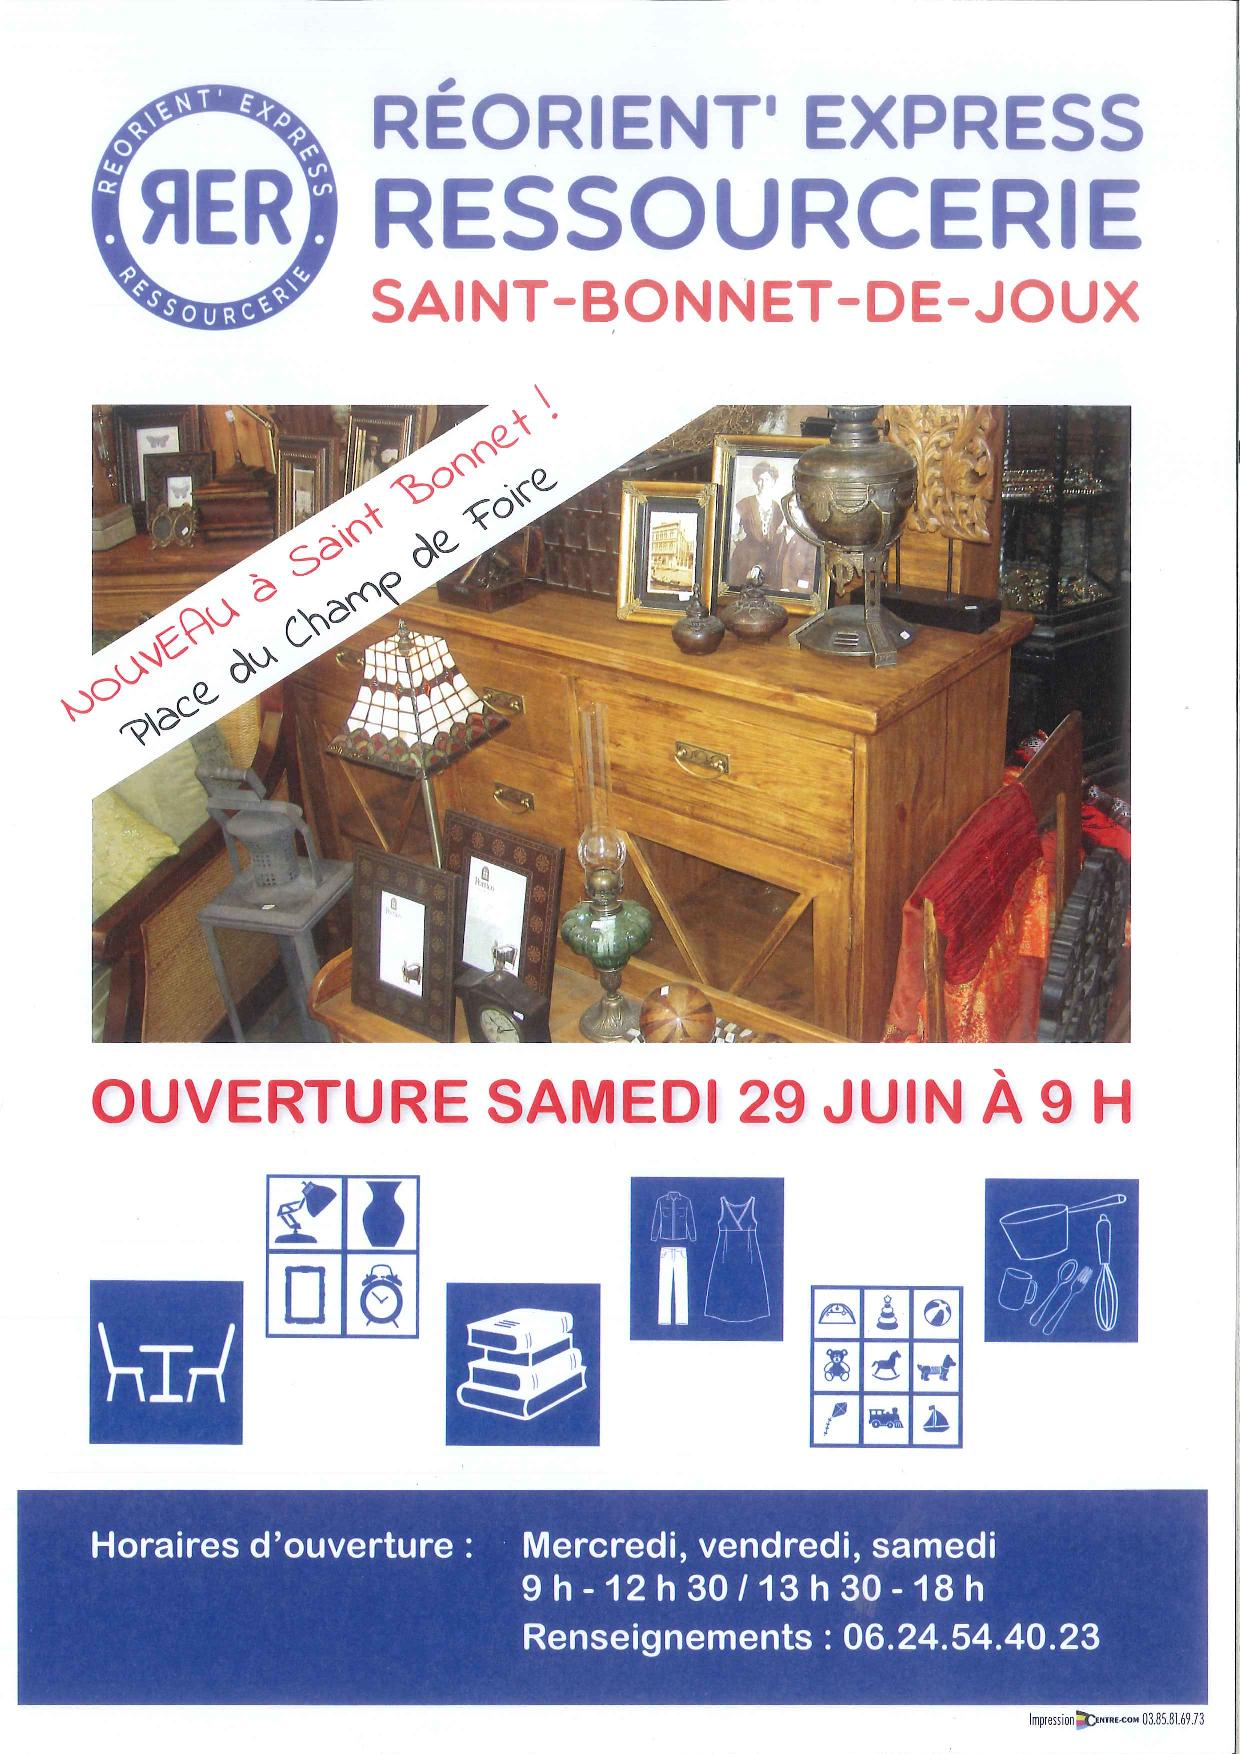 Ressourcerie-page-001